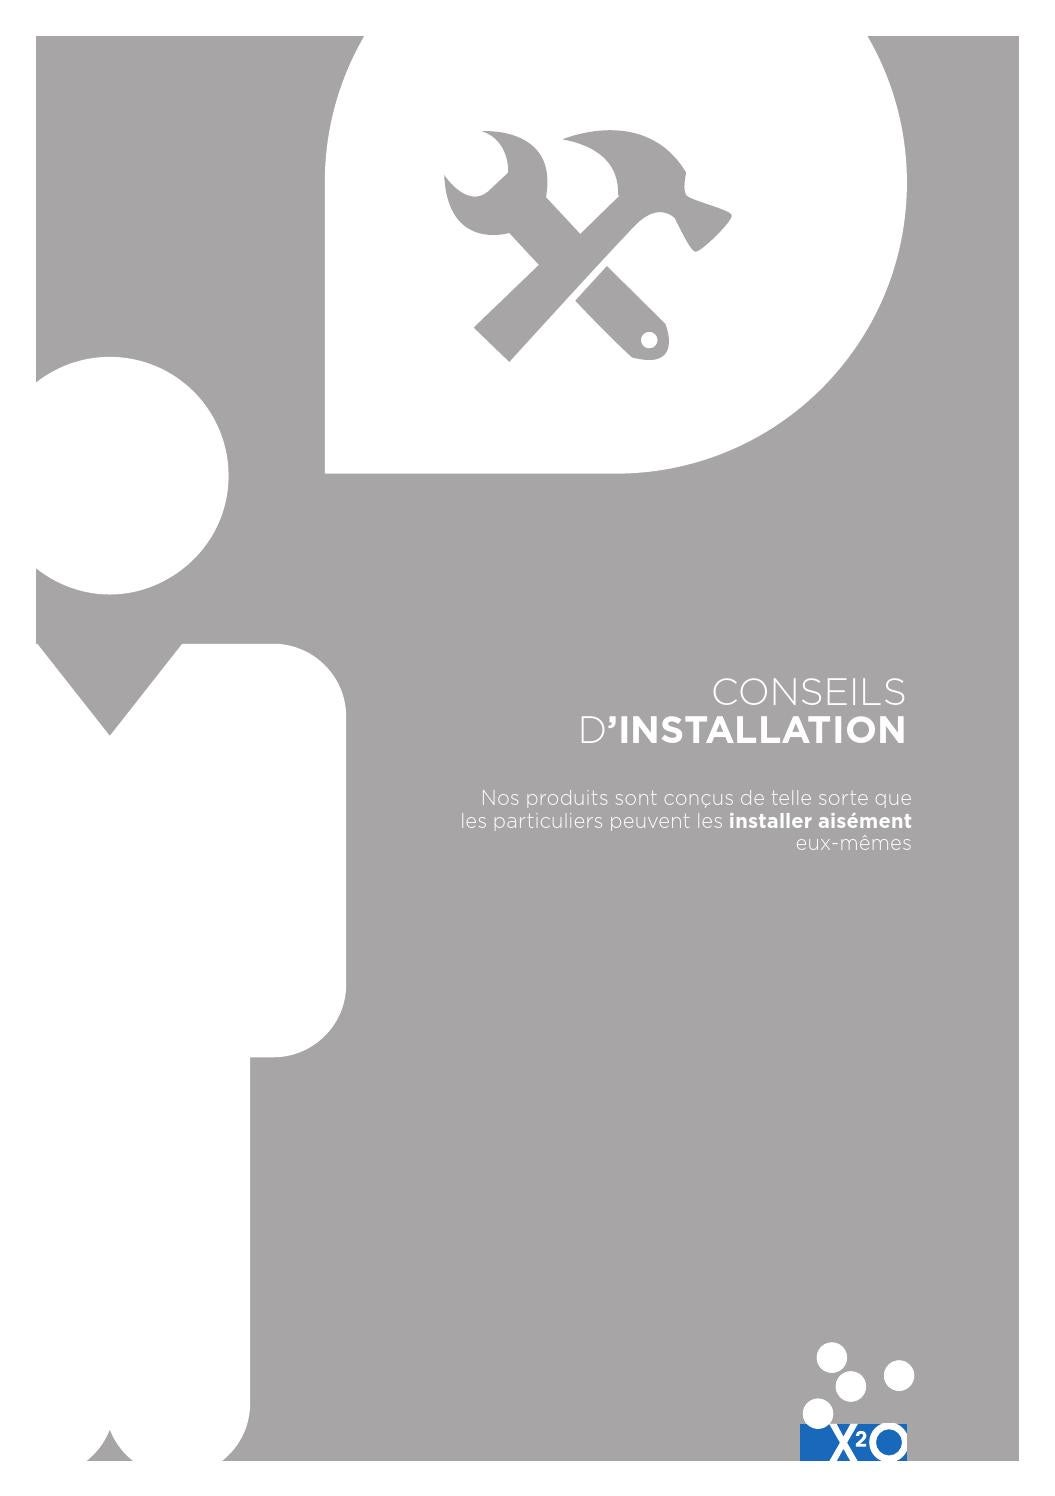 X2o Folder Conseils D Installation By X2o Sanitary Issuu